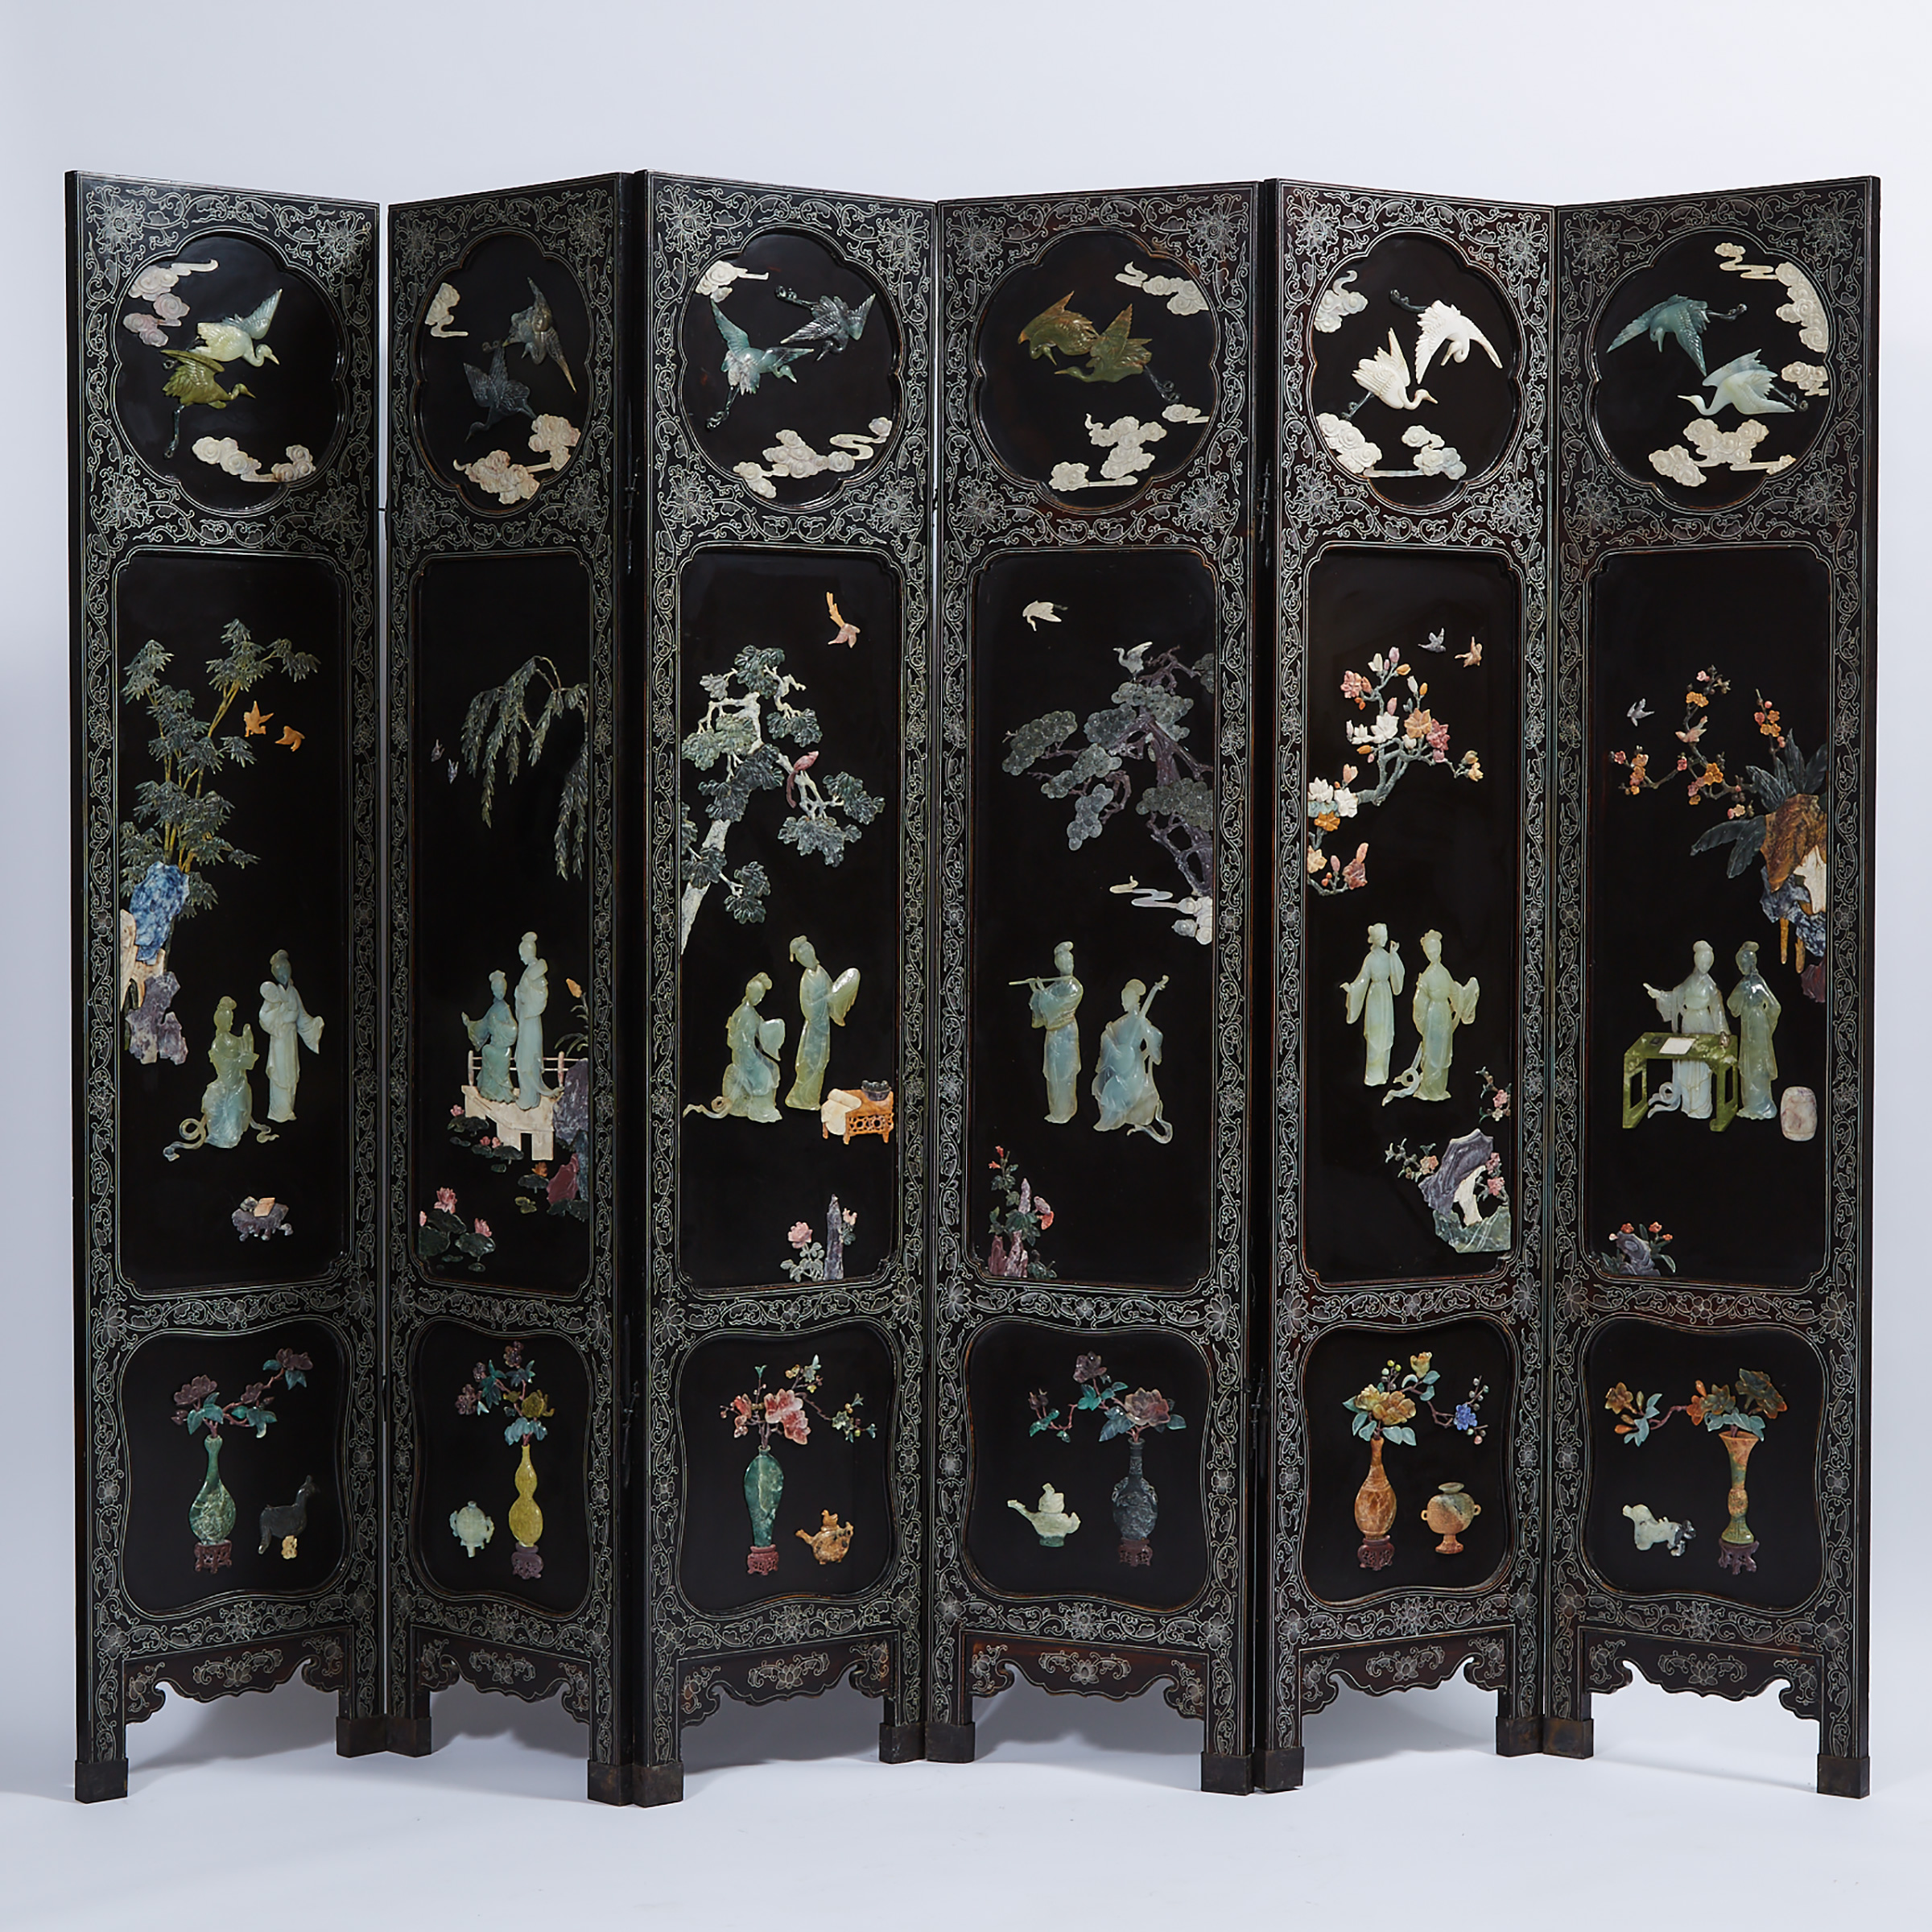 A Six Panel Hardstone Inlaid Black Lacquer Floor Screen